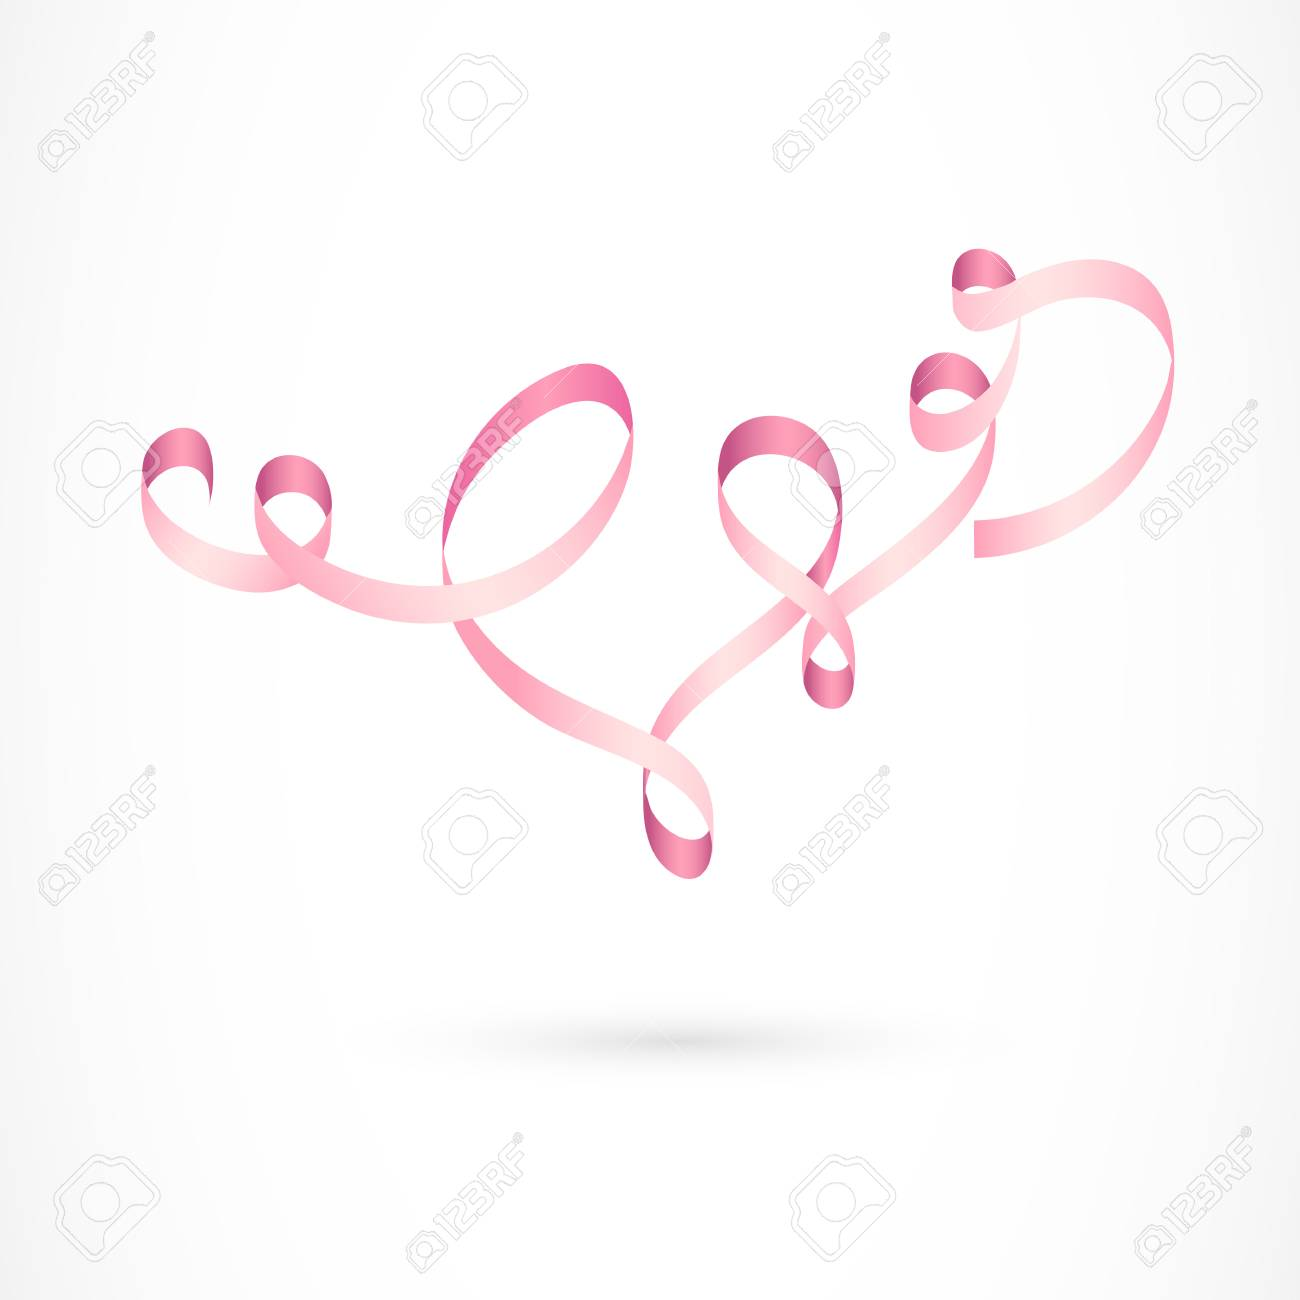 Sport Flying Tangled Pink Ribbon Decoration Sport Flying Rhythmic Gymnastics